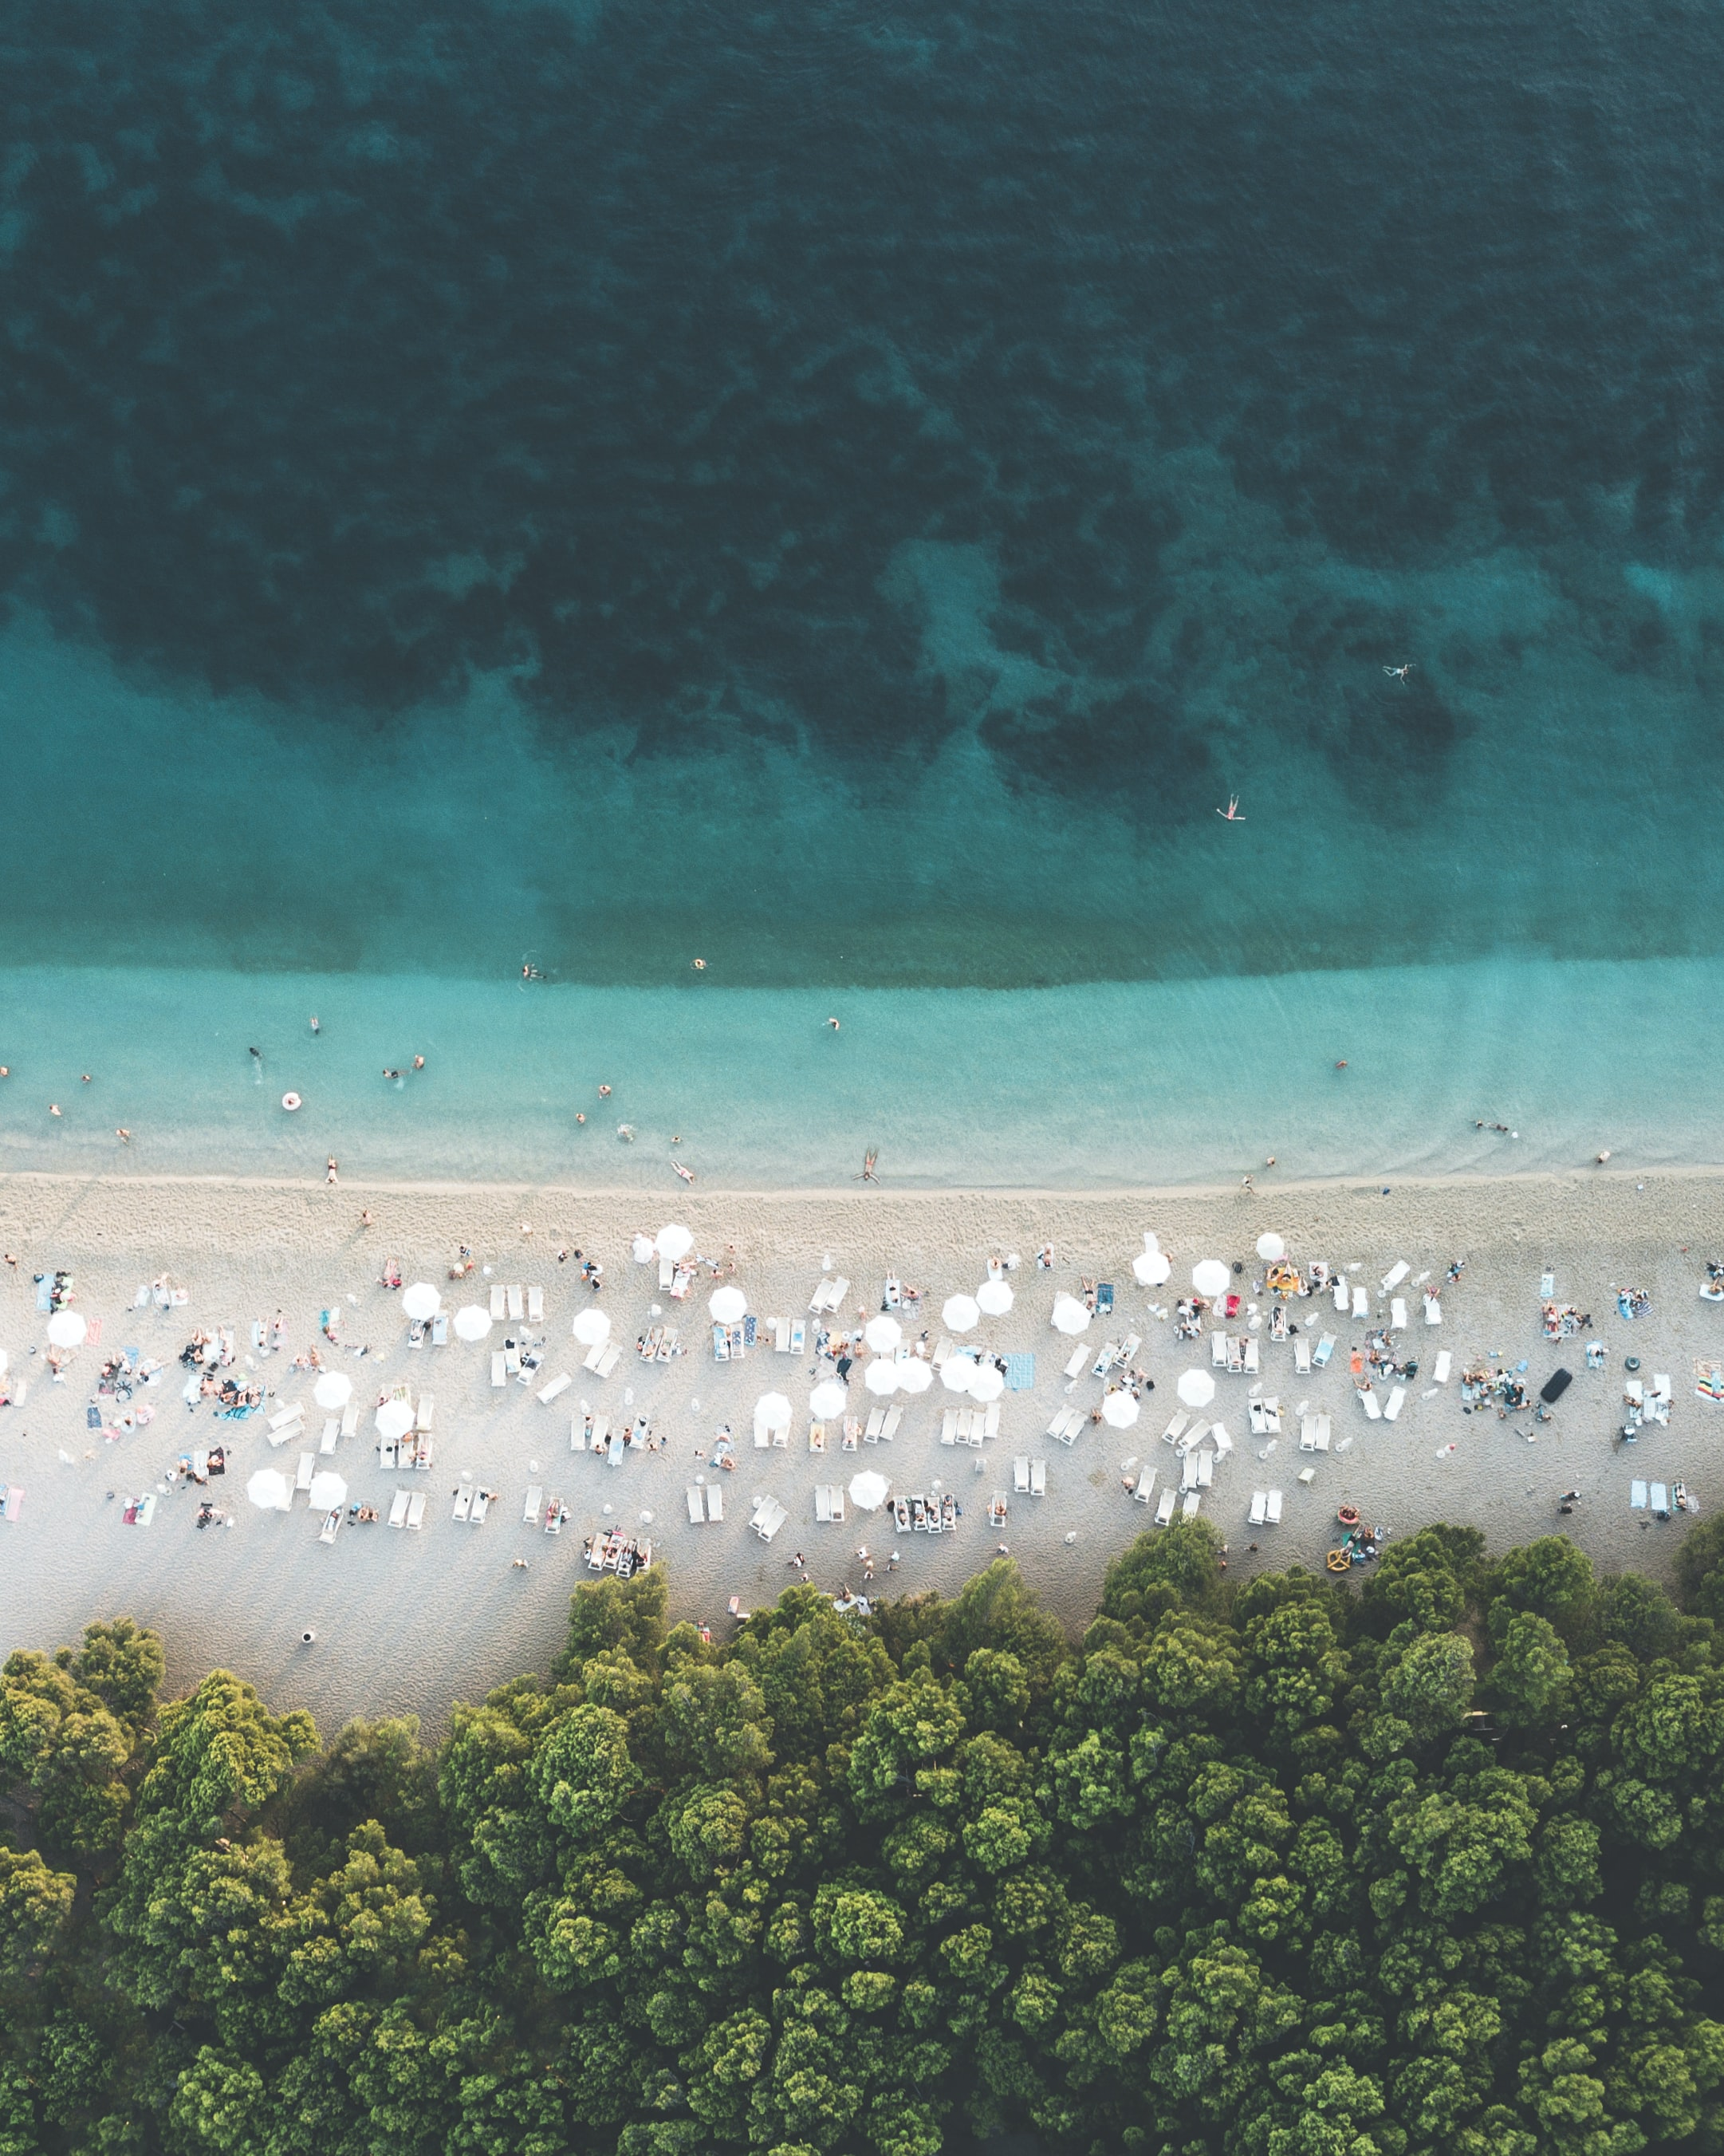 people on the coastline near trees aerial photography